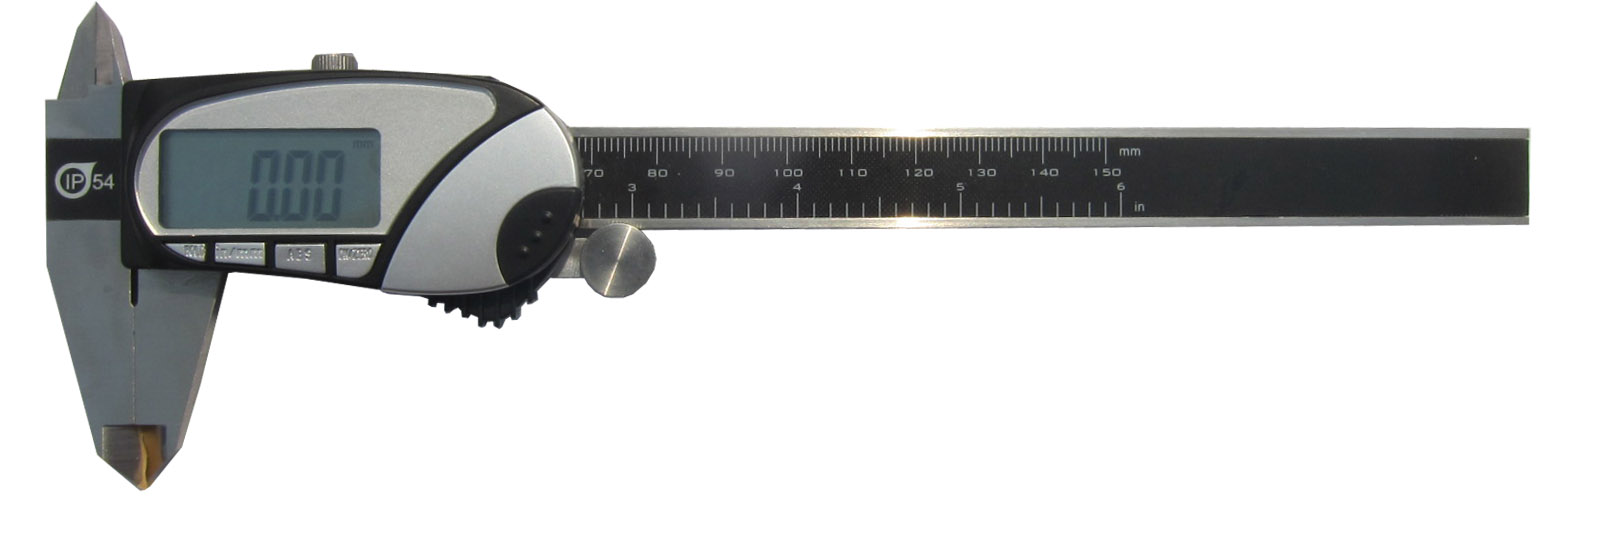 Digital vernier caliper with IP54 water proof. made of stainless steel